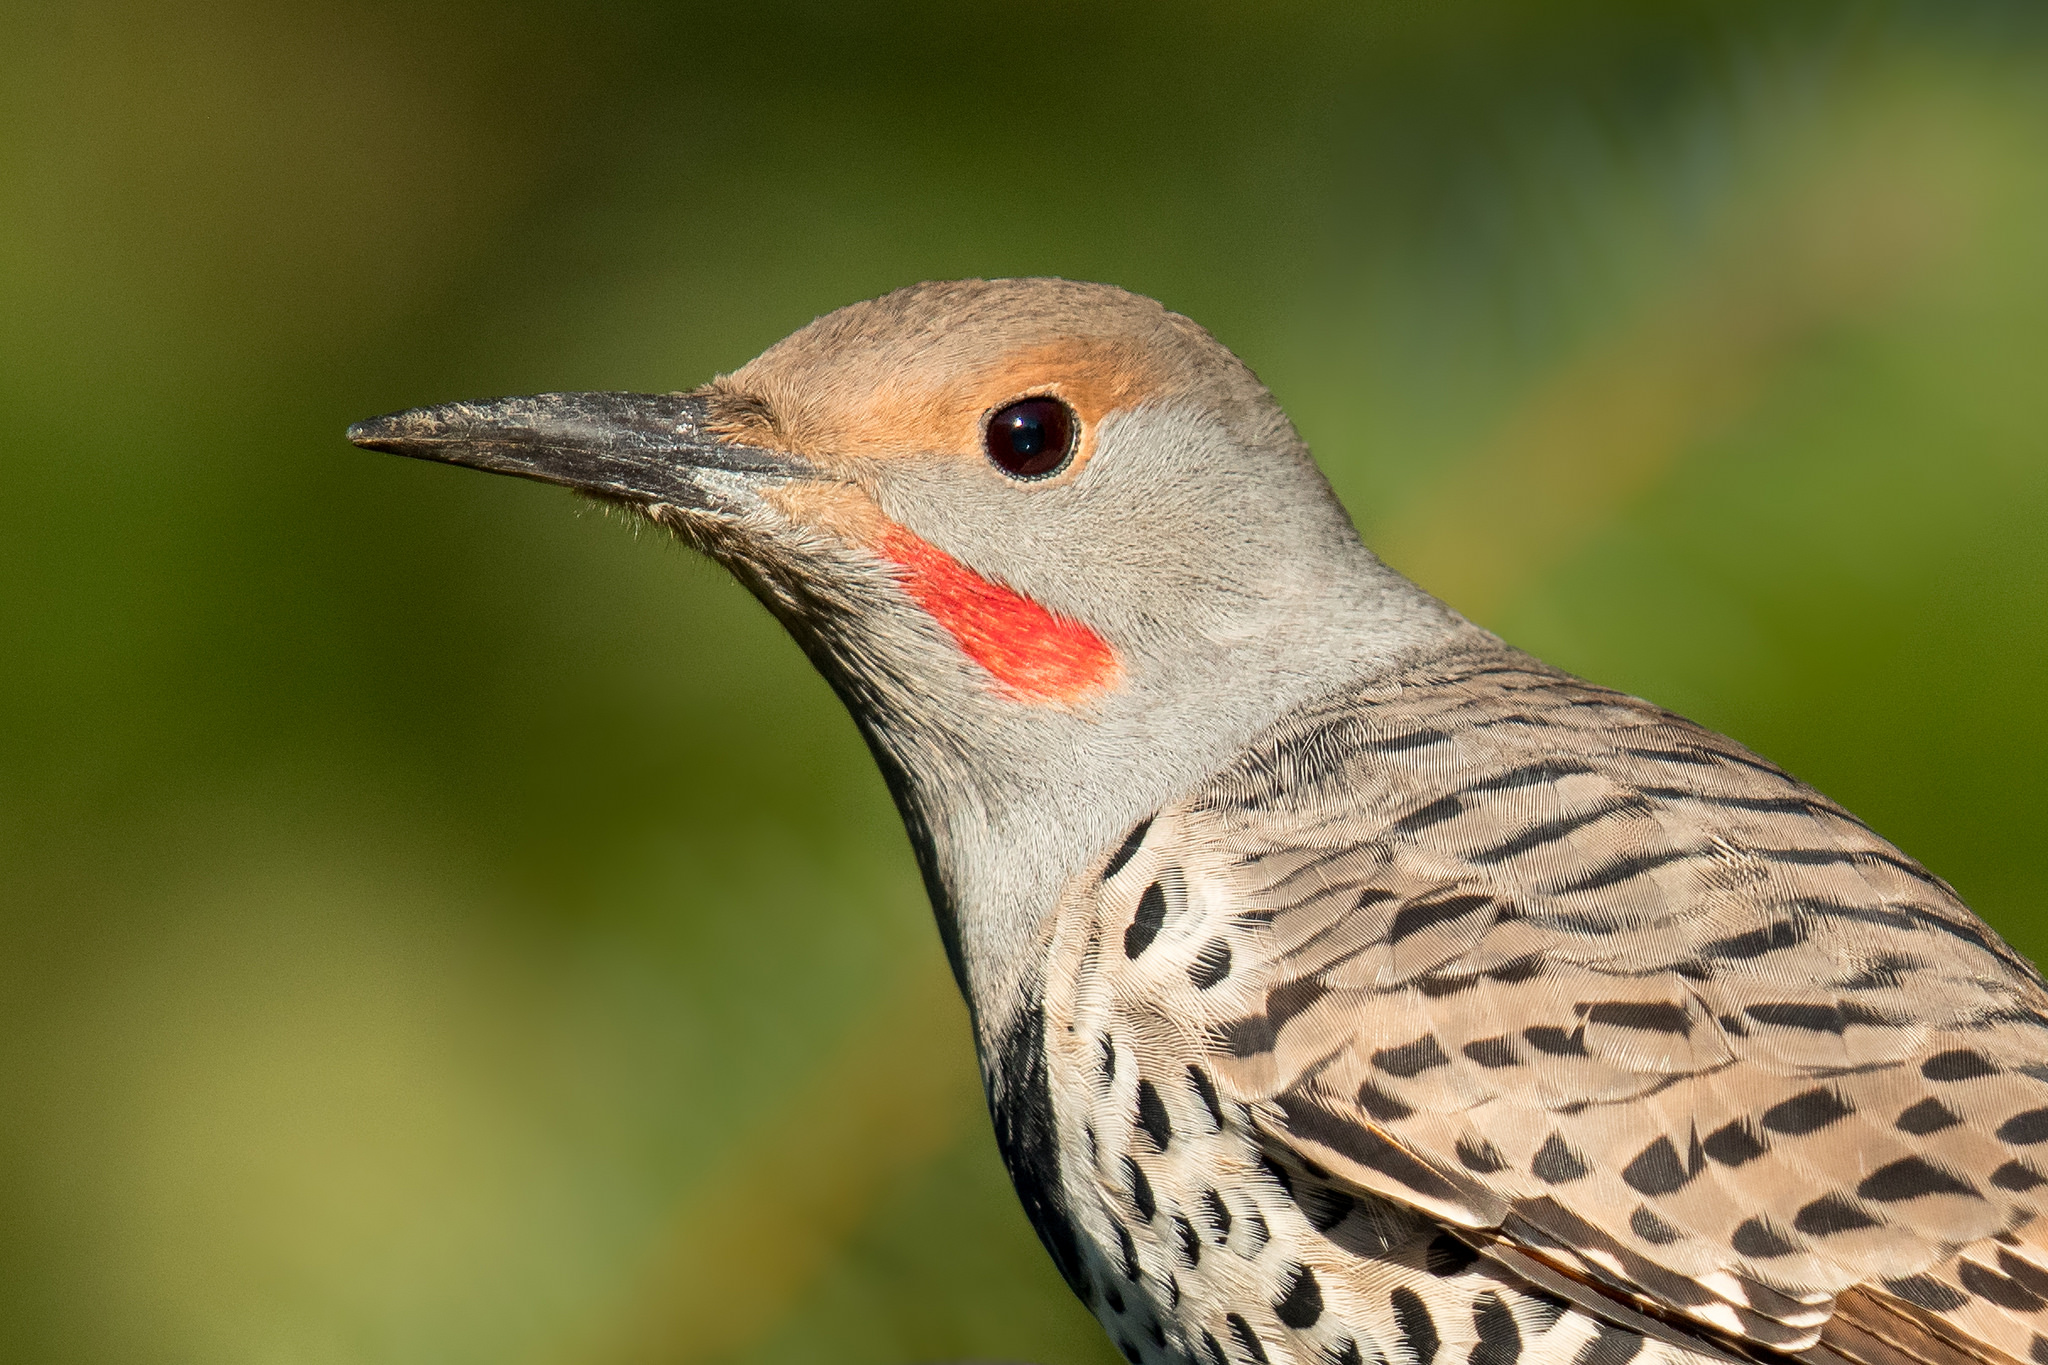 Northern Flicker by Mick Thompson